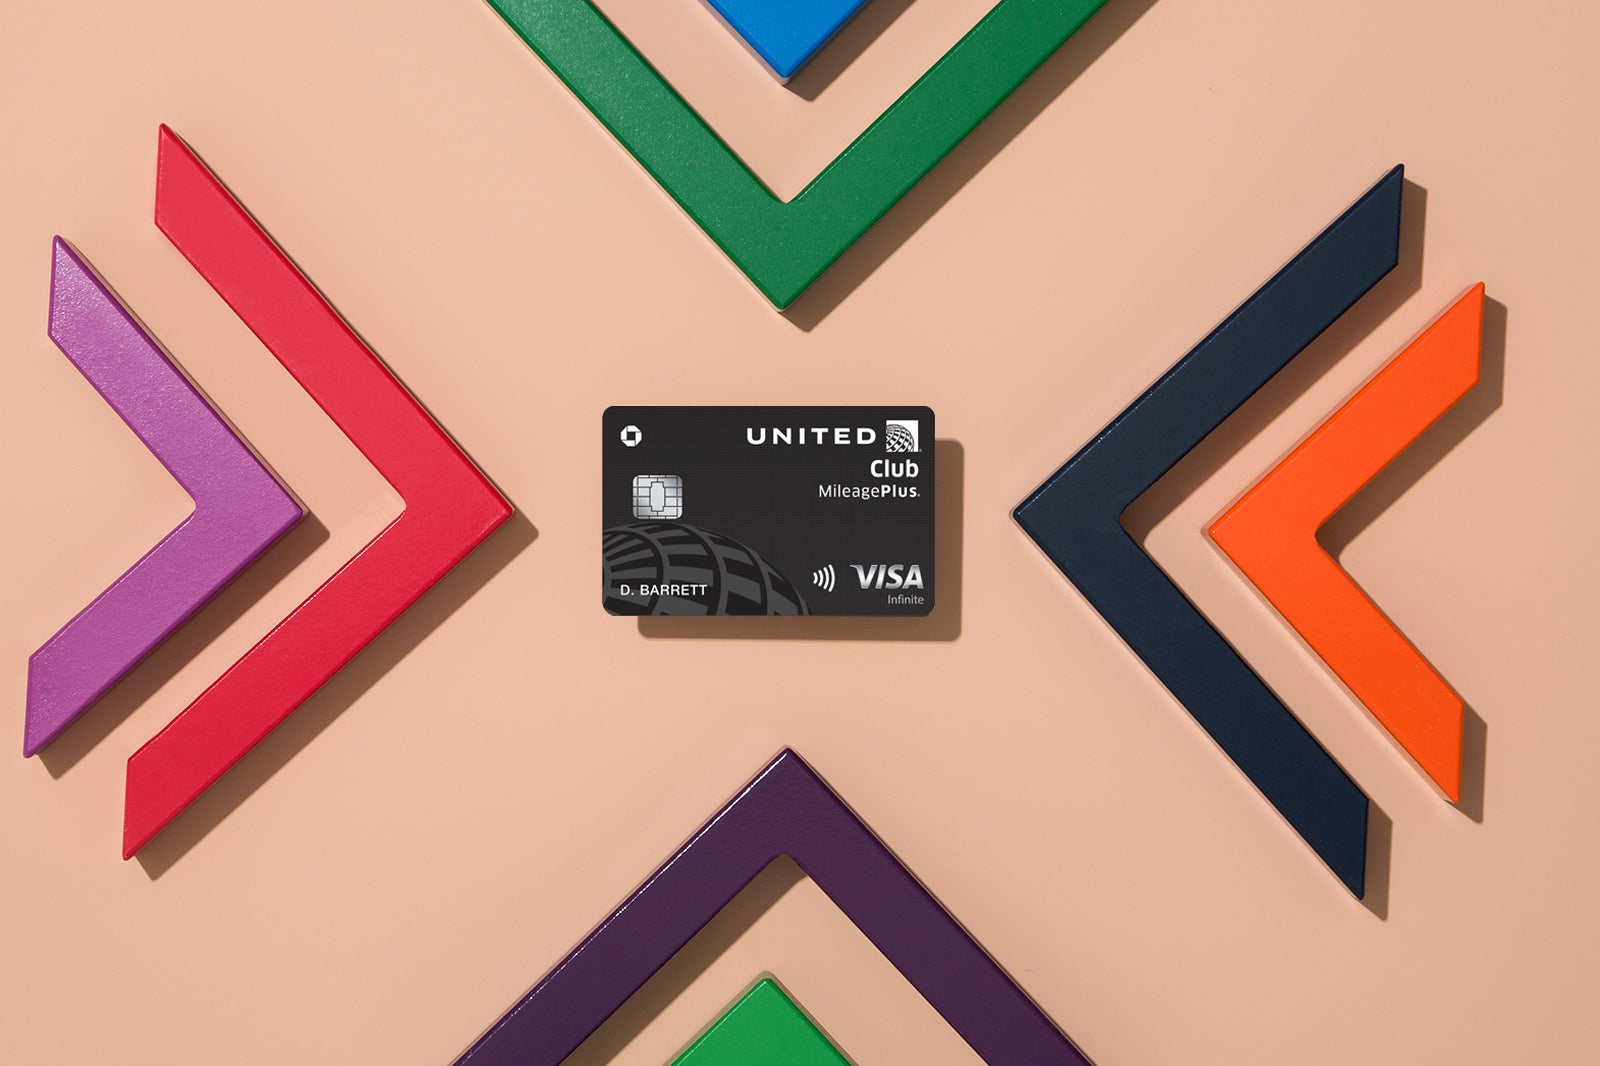 United Club Infinite Card (Photo by Eric Helgas/The Points Guy)